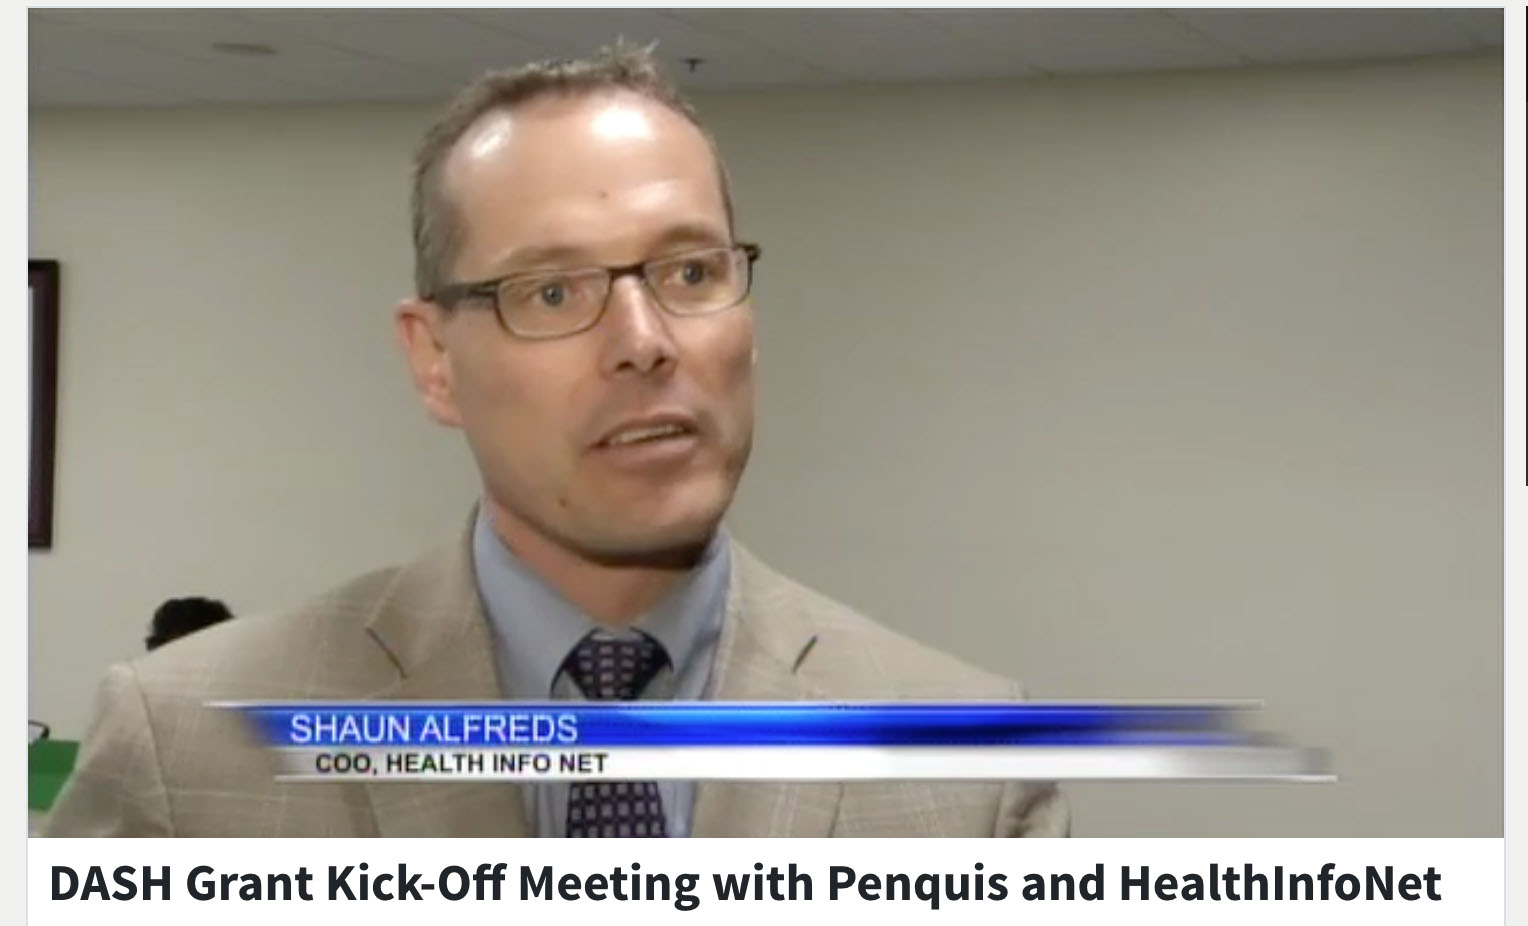 DASH Grant Kick-Off Meeting with Penquis and HealthInfoNet